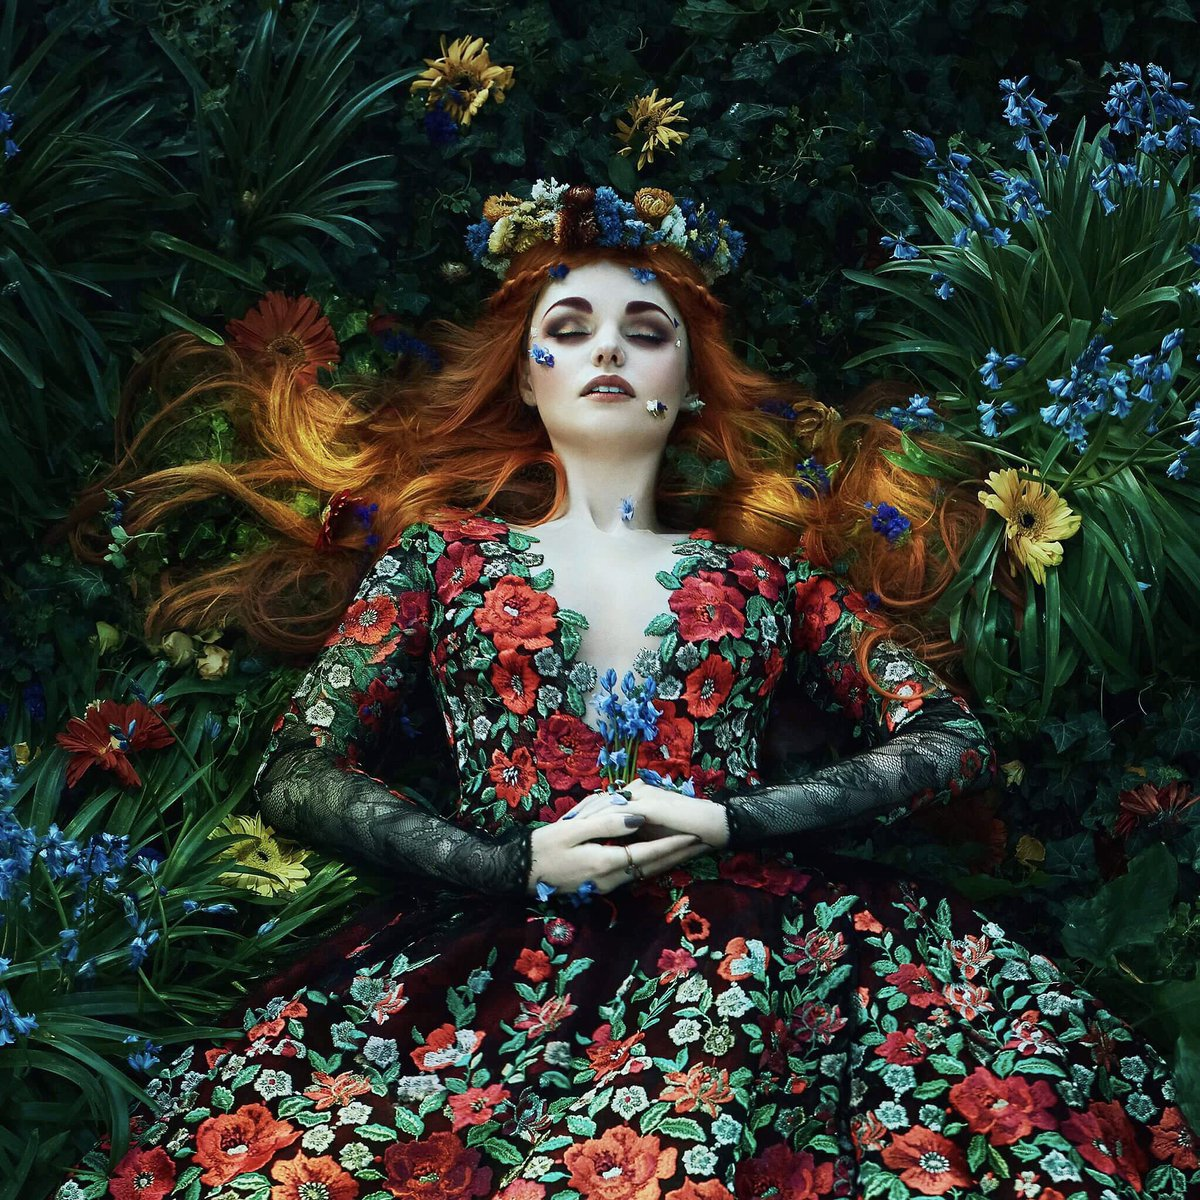 Photographer creates scenes and queens right out of a fairytale